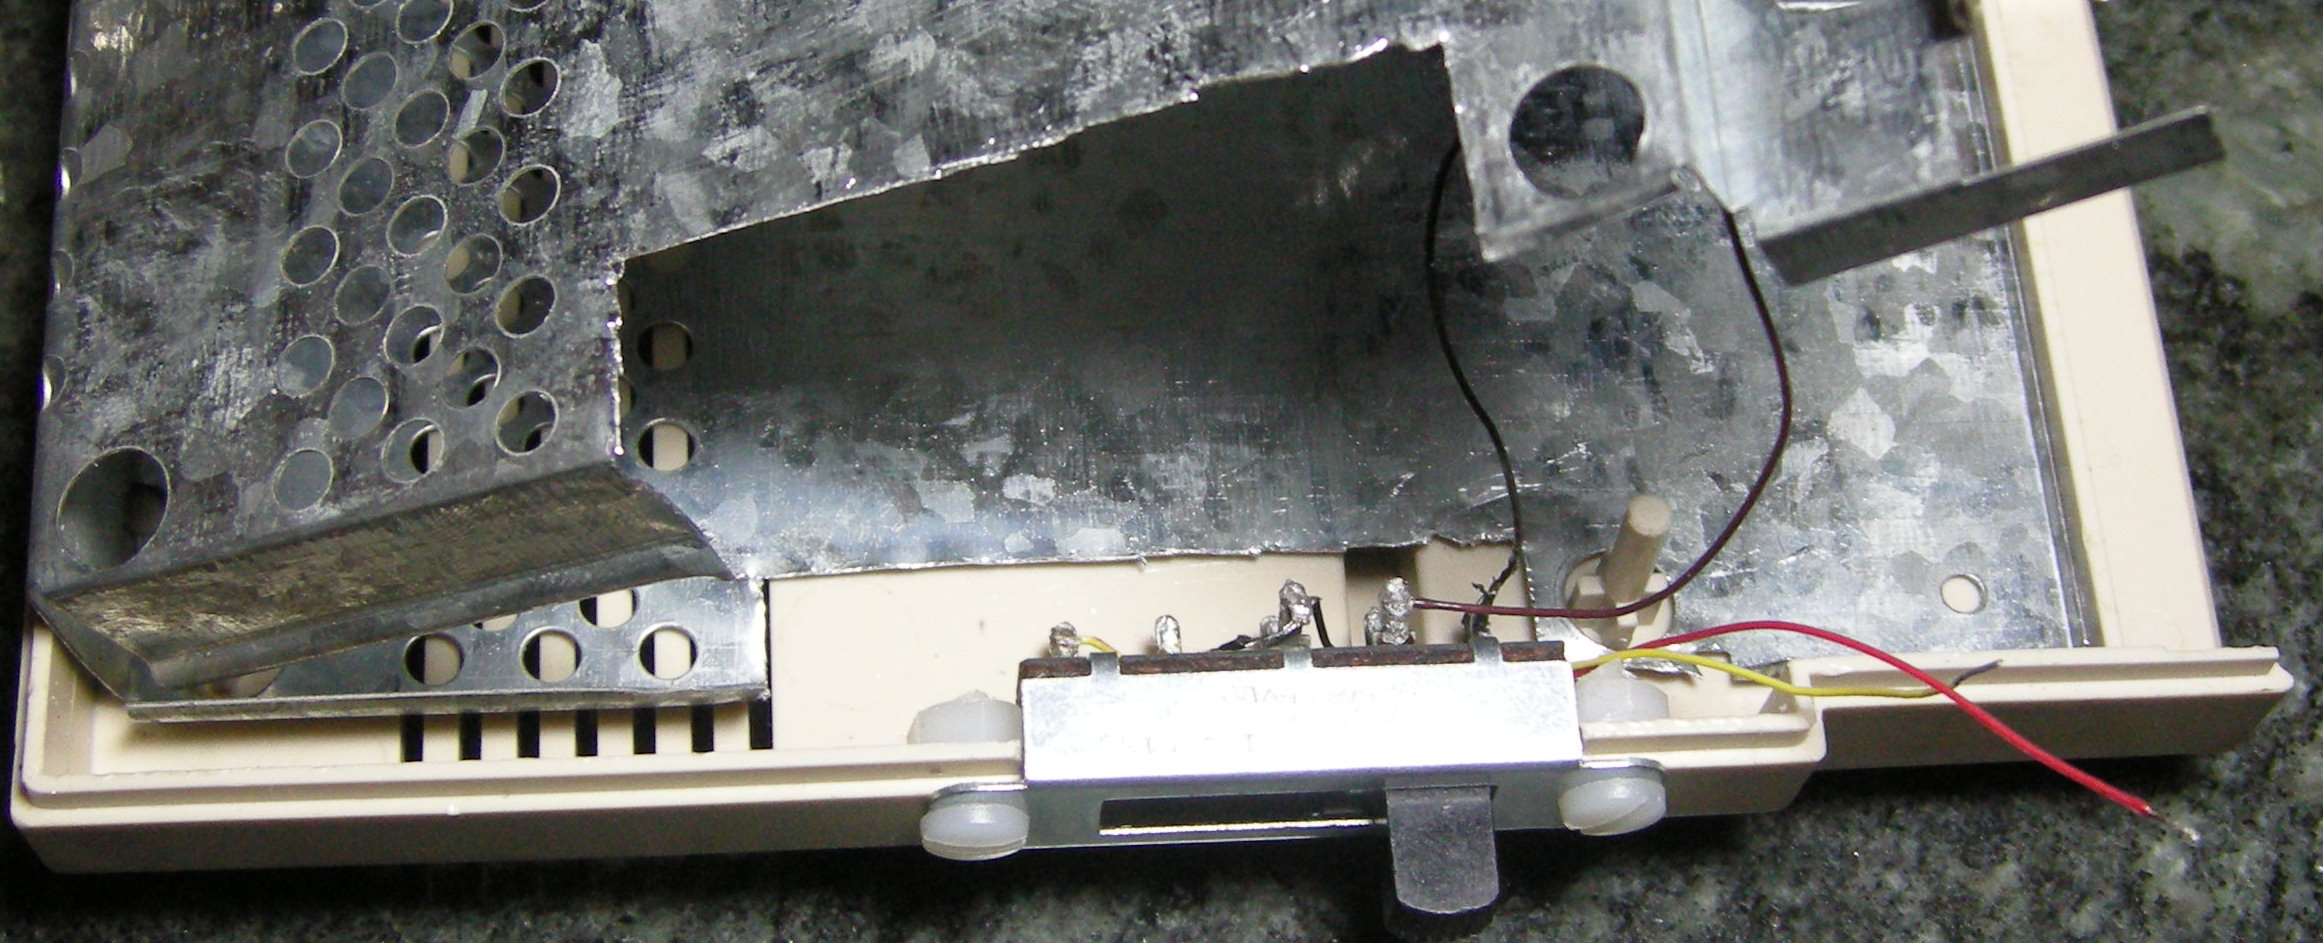 Top view, showing modification to RFI cage